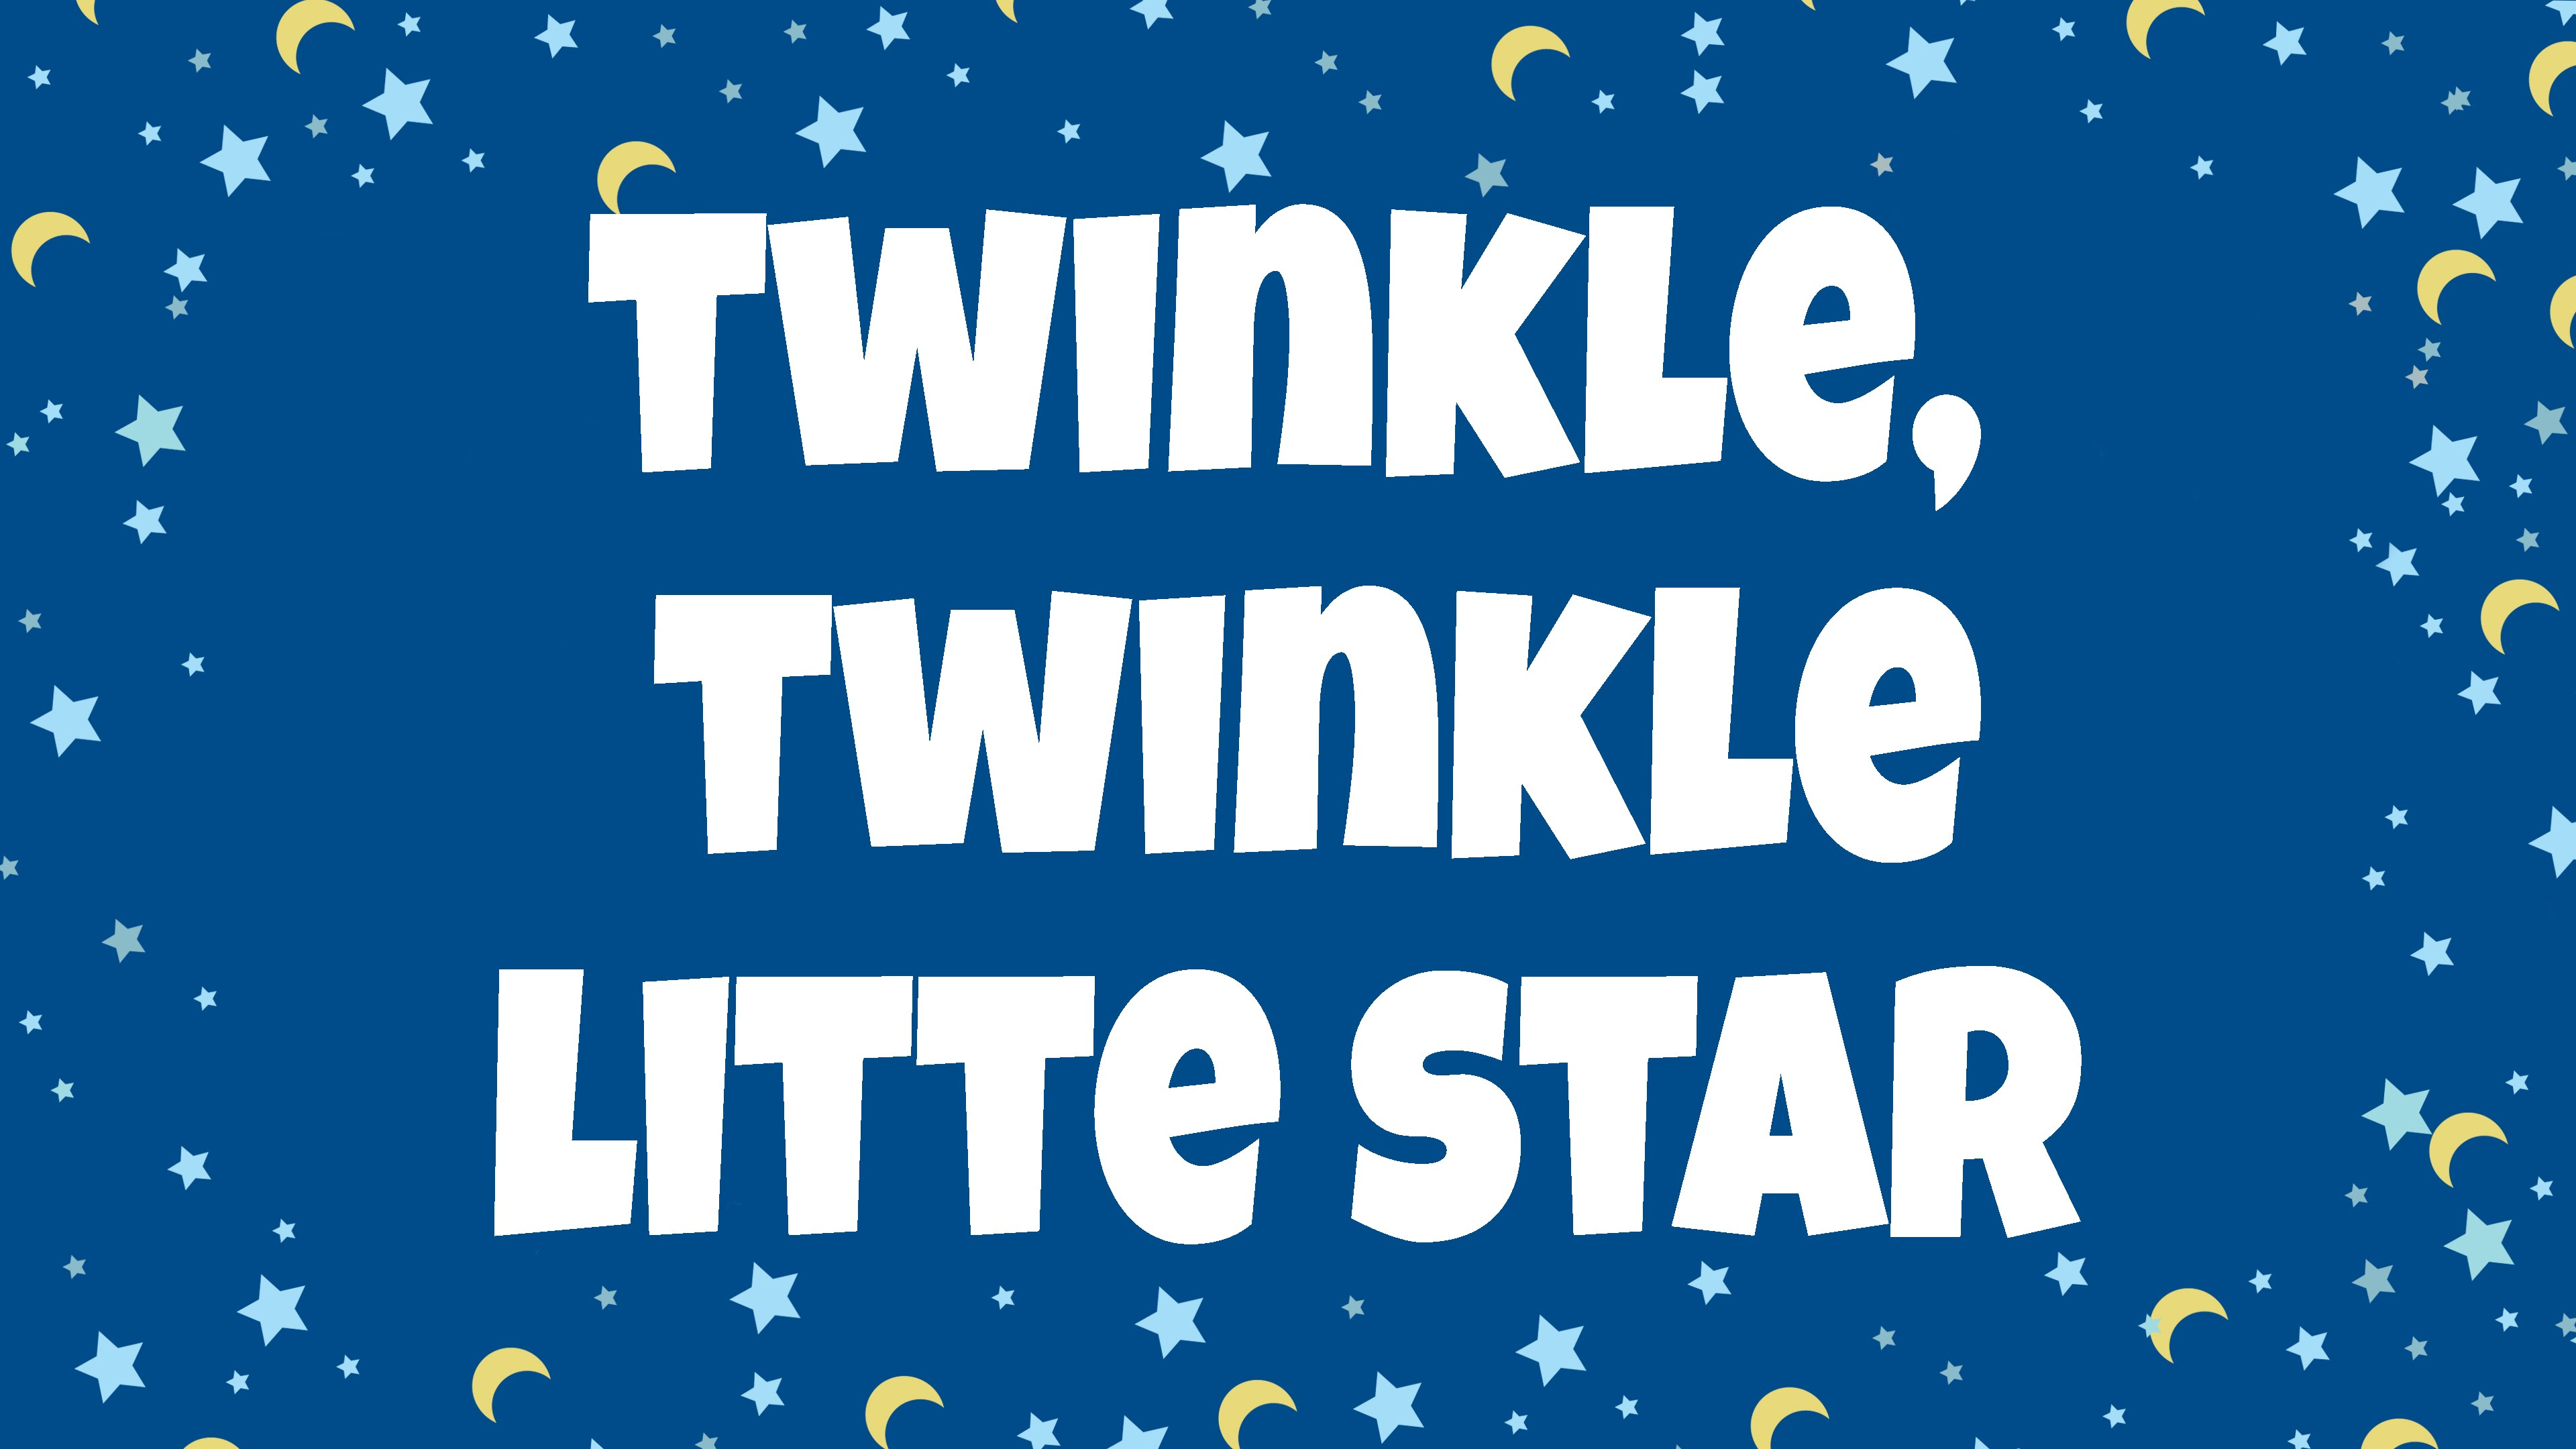 Twinkle Twinkle Little Star Lyrics | Nursery Rhymes | Children Love to Sing